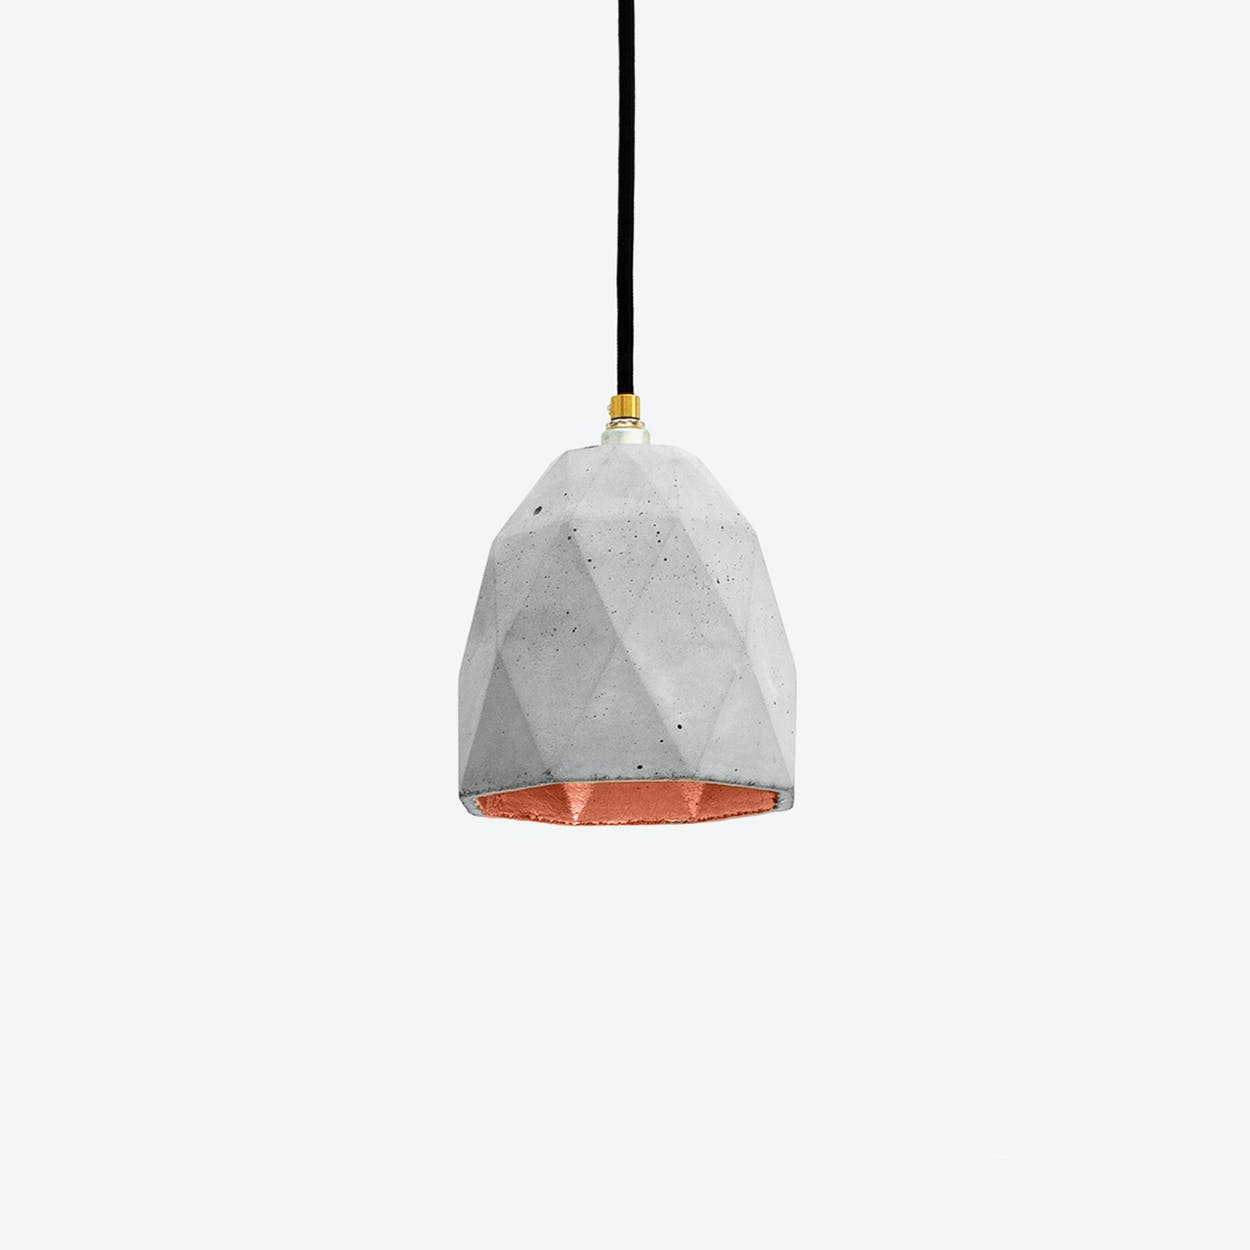 Concrete Pendant Light Triangle T1 in Light Grey and Copper